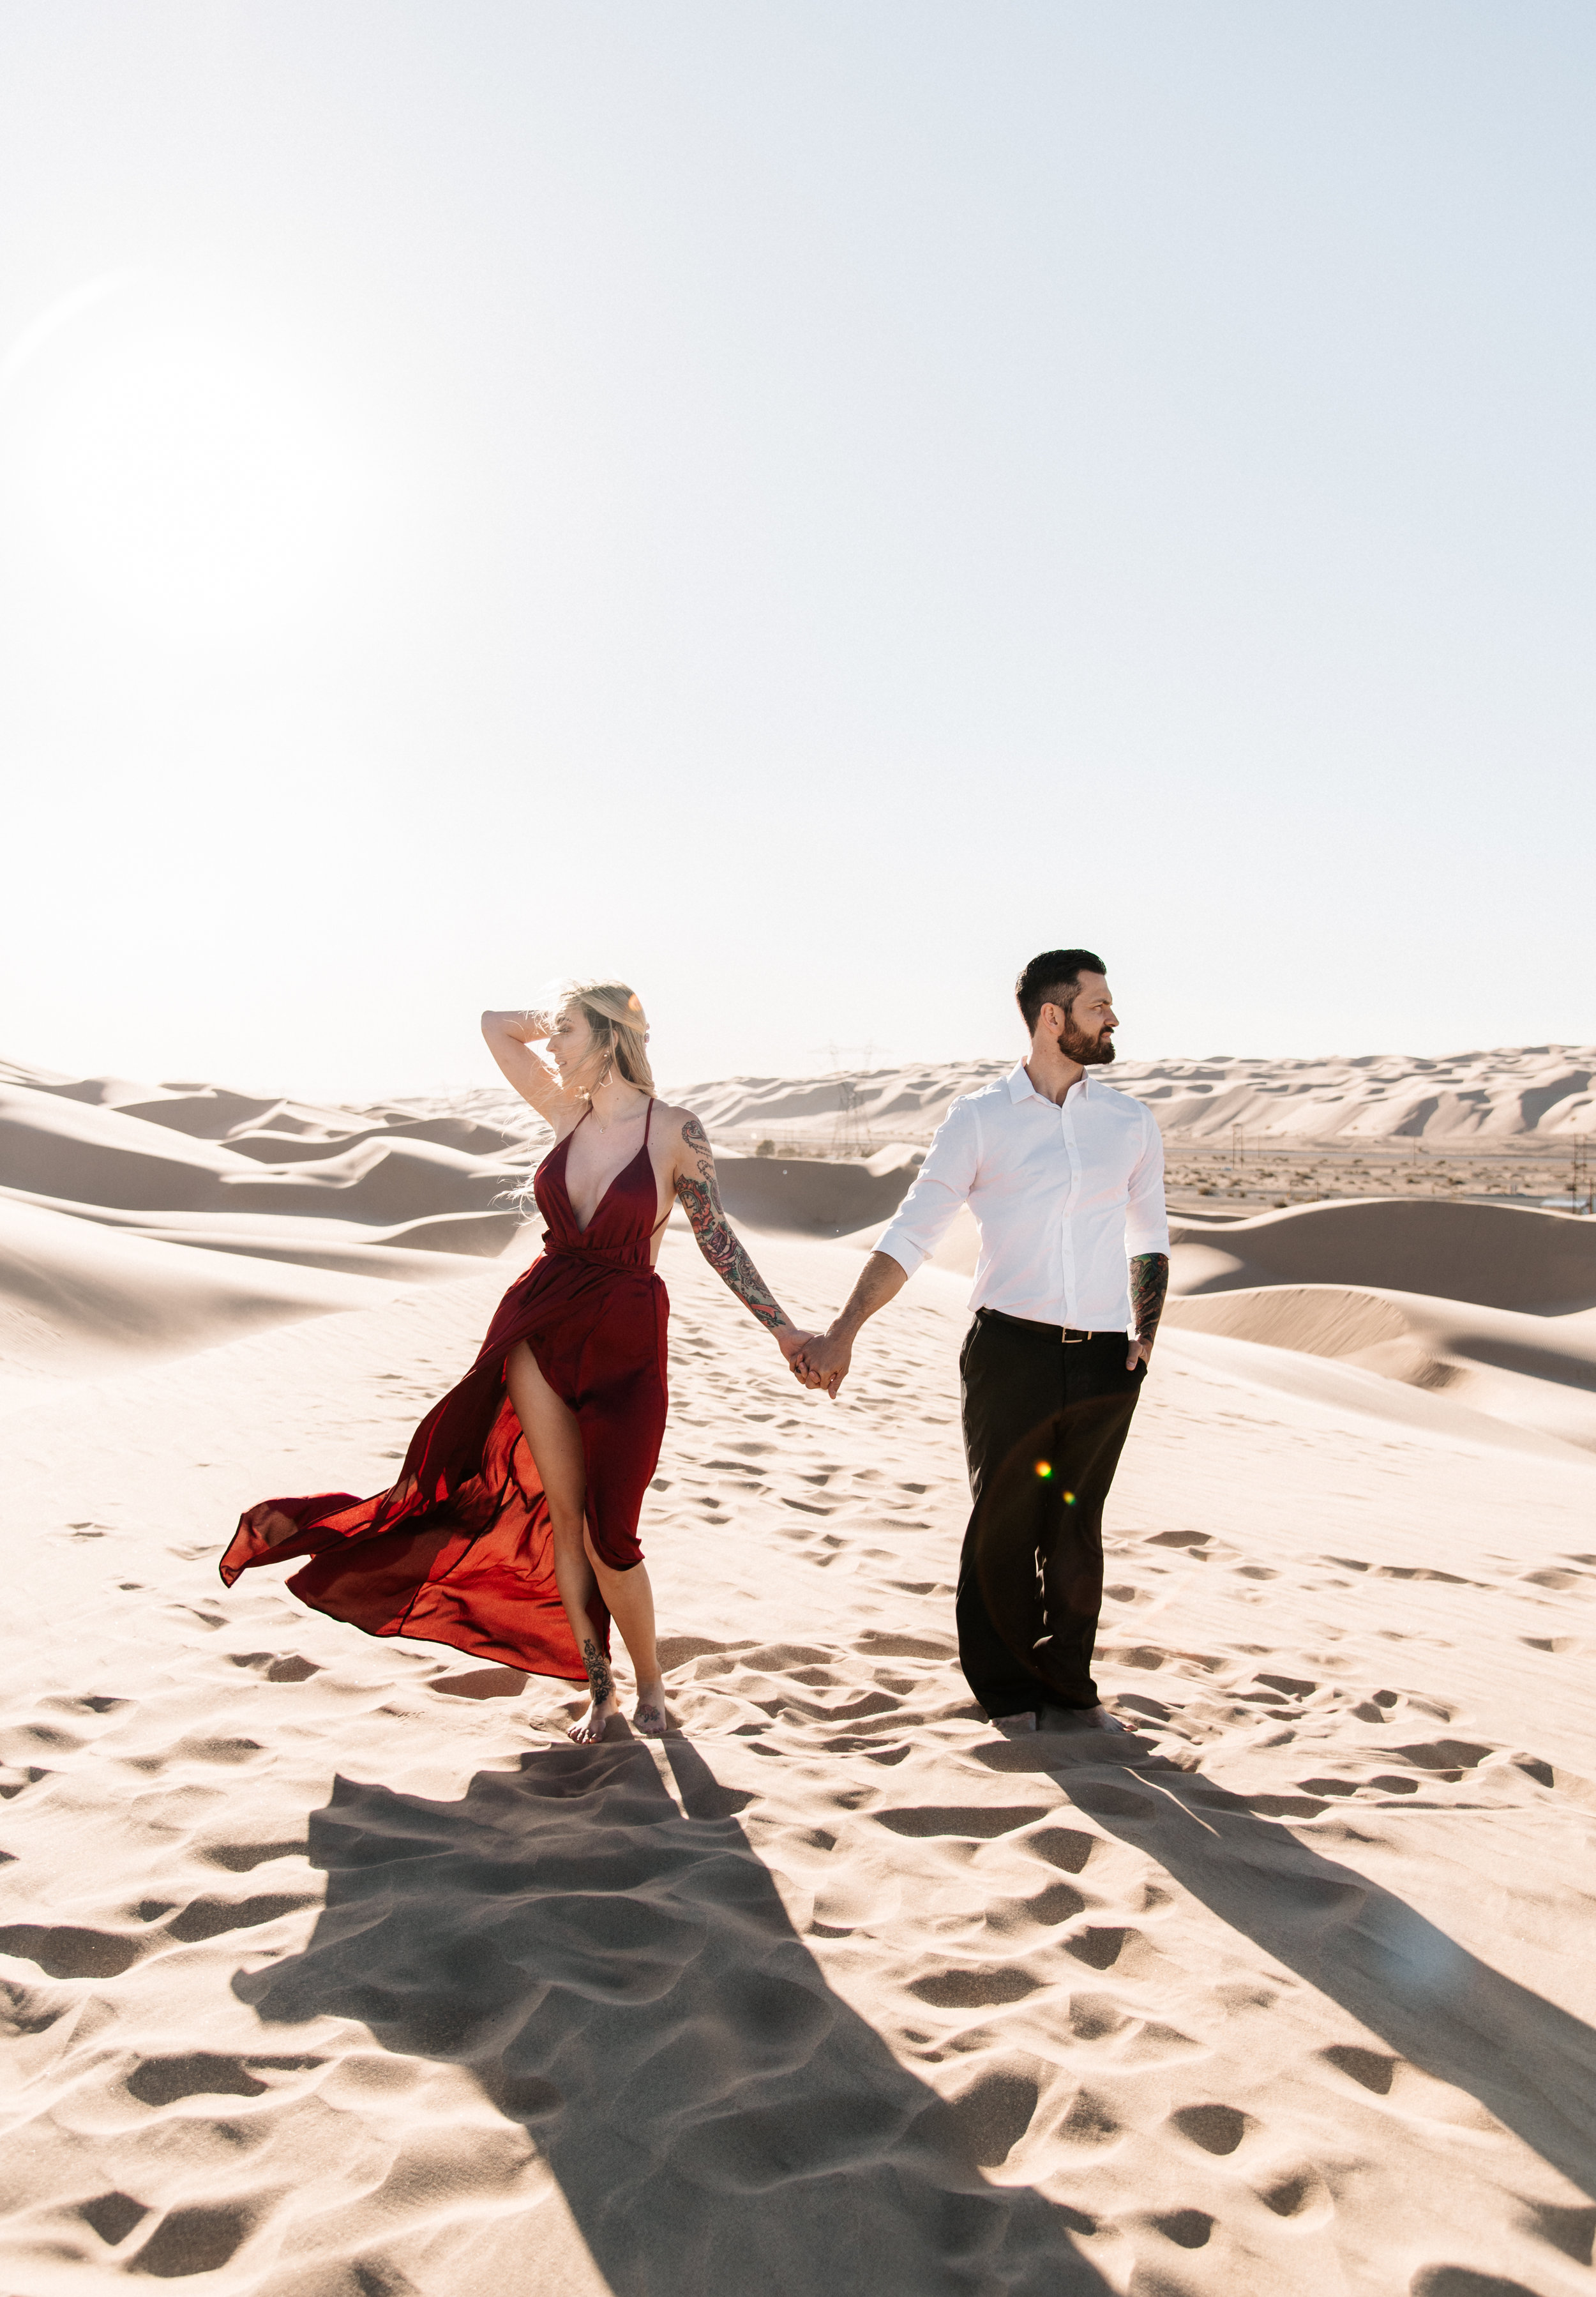 SamErica Studios - Modern San Diego Engagement Photographer - Adventure Engagement Session in Glamis Sand Dunes California-34.jpg